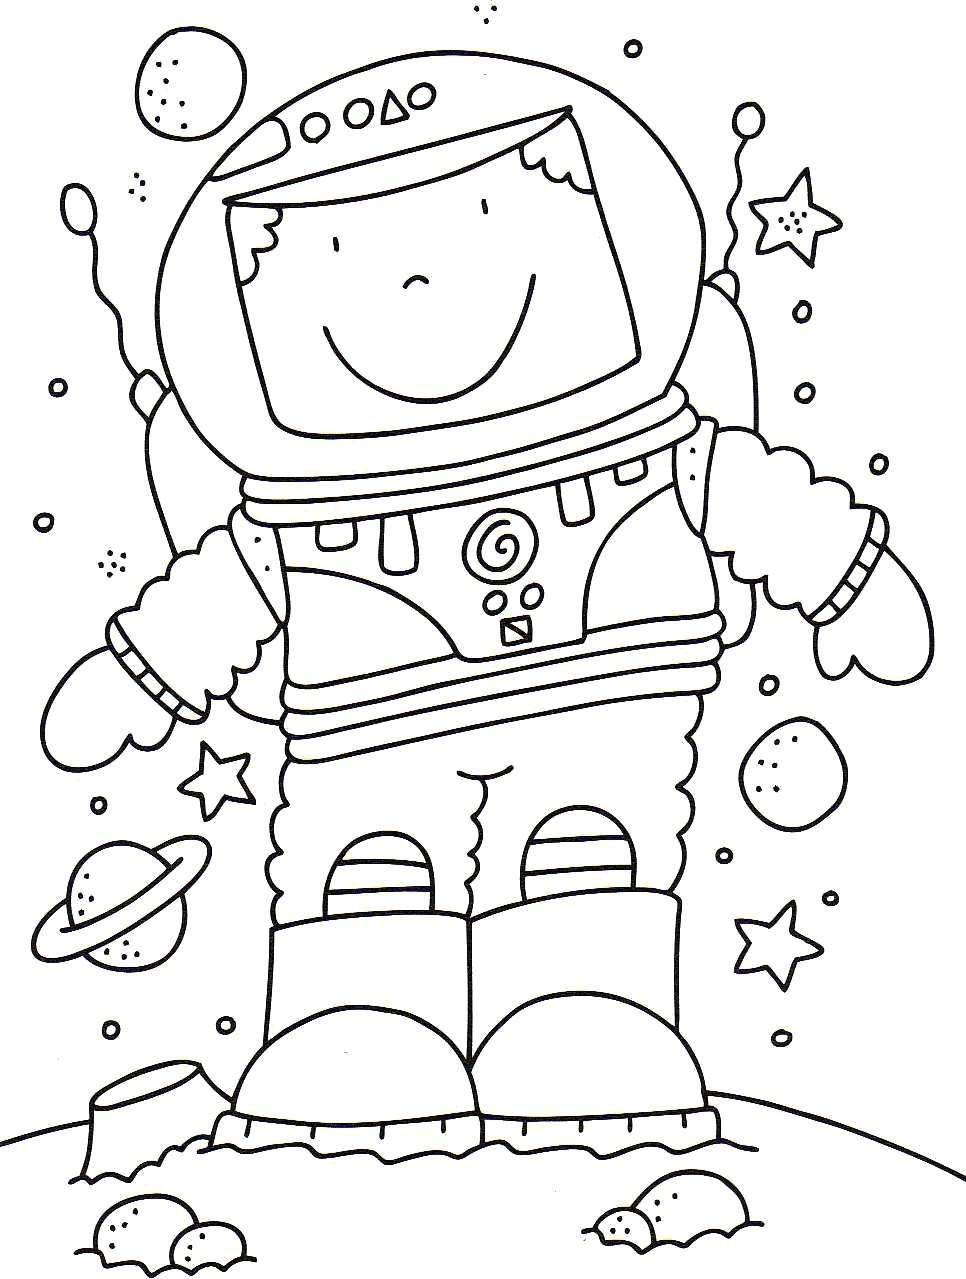 Pin By Annelies Hendrikx On Elp Coloring Pages Space Coloring Sheet Solar System Coloring Pages Space Coloring Pages [ 1279 x 966 Pixel ]